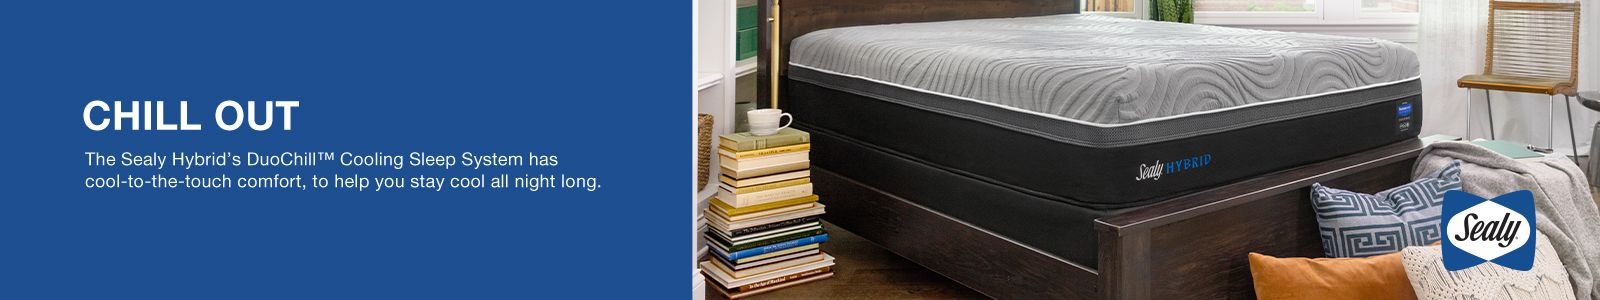 Chill Out, The Sealy Hybrid's DuoChill™ Cooling Sleep System has cool-to-the-touch comfort, to help you stay cool all night long